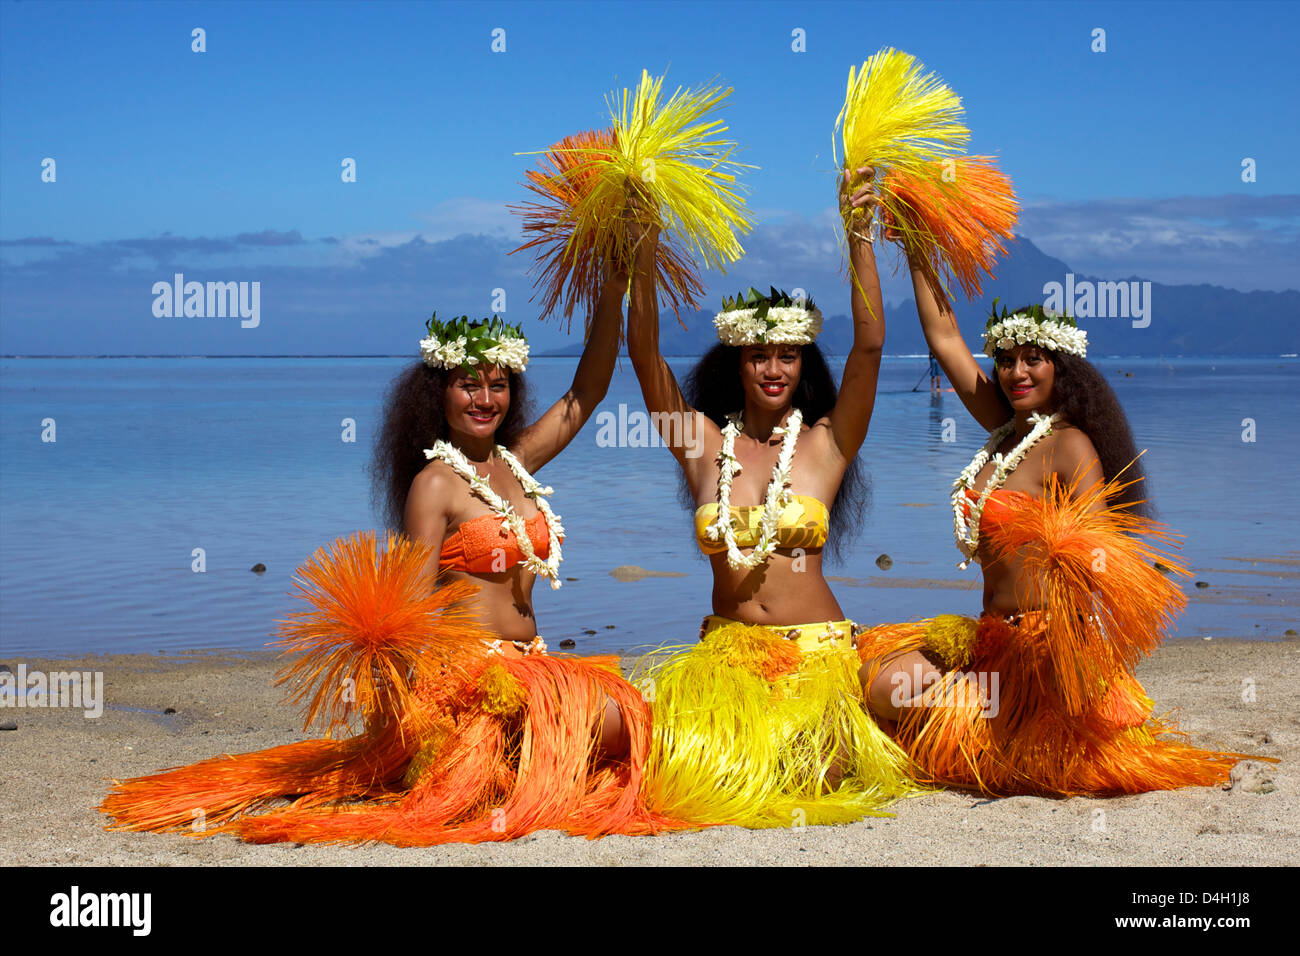 Some vahines from the Tahiti ora troupe, French Polynesia Islands - Stock Image